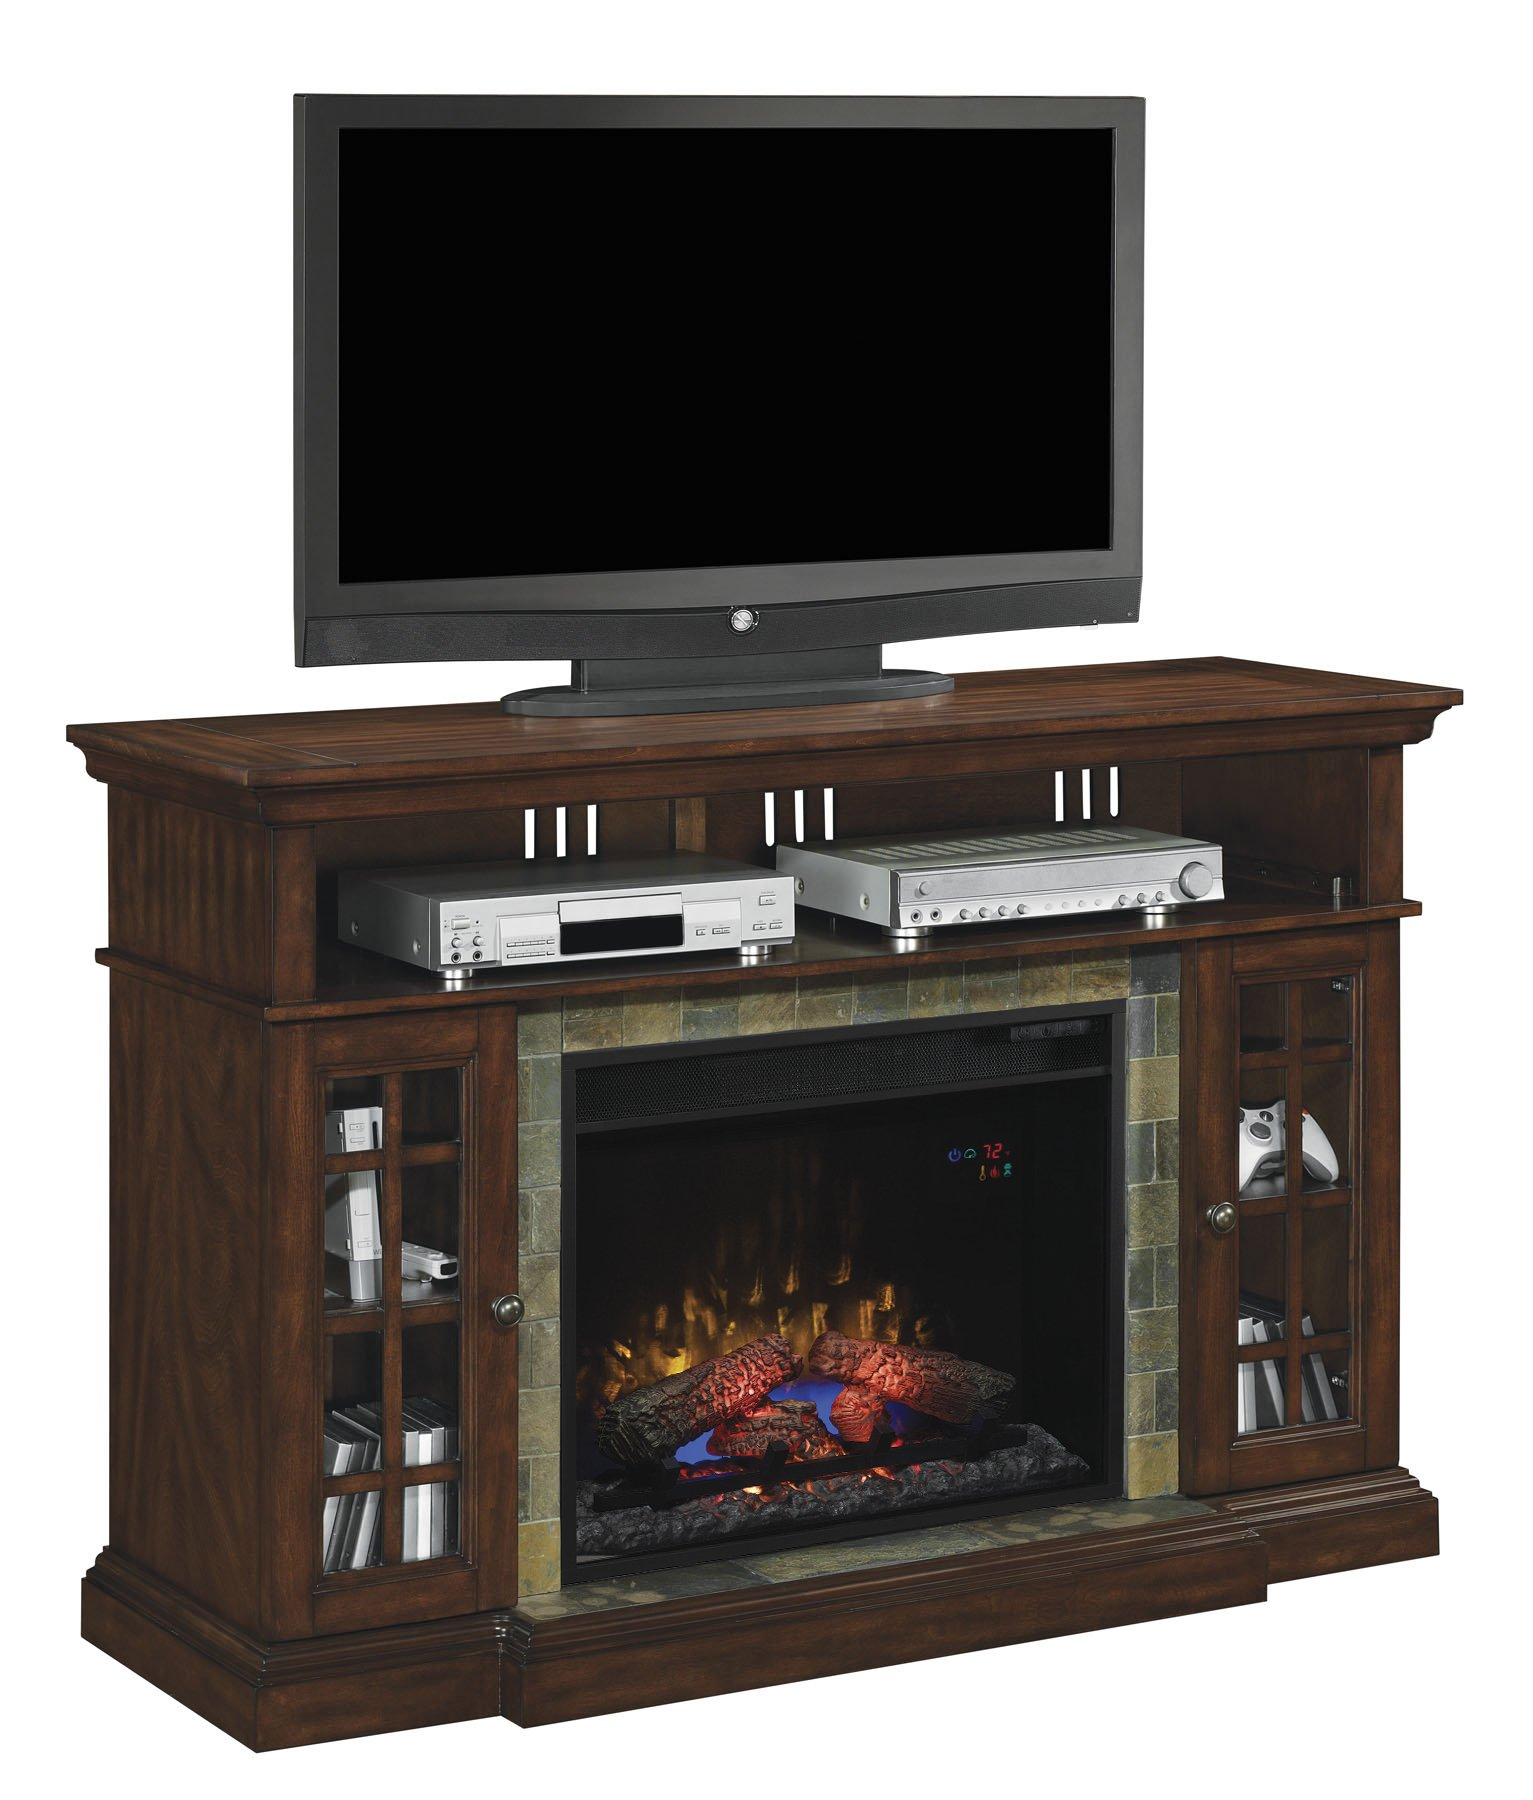 Cheap Electric Fireplace Cherry Find Electric Fireplace Cherry Deals On Line At Alibaba Com